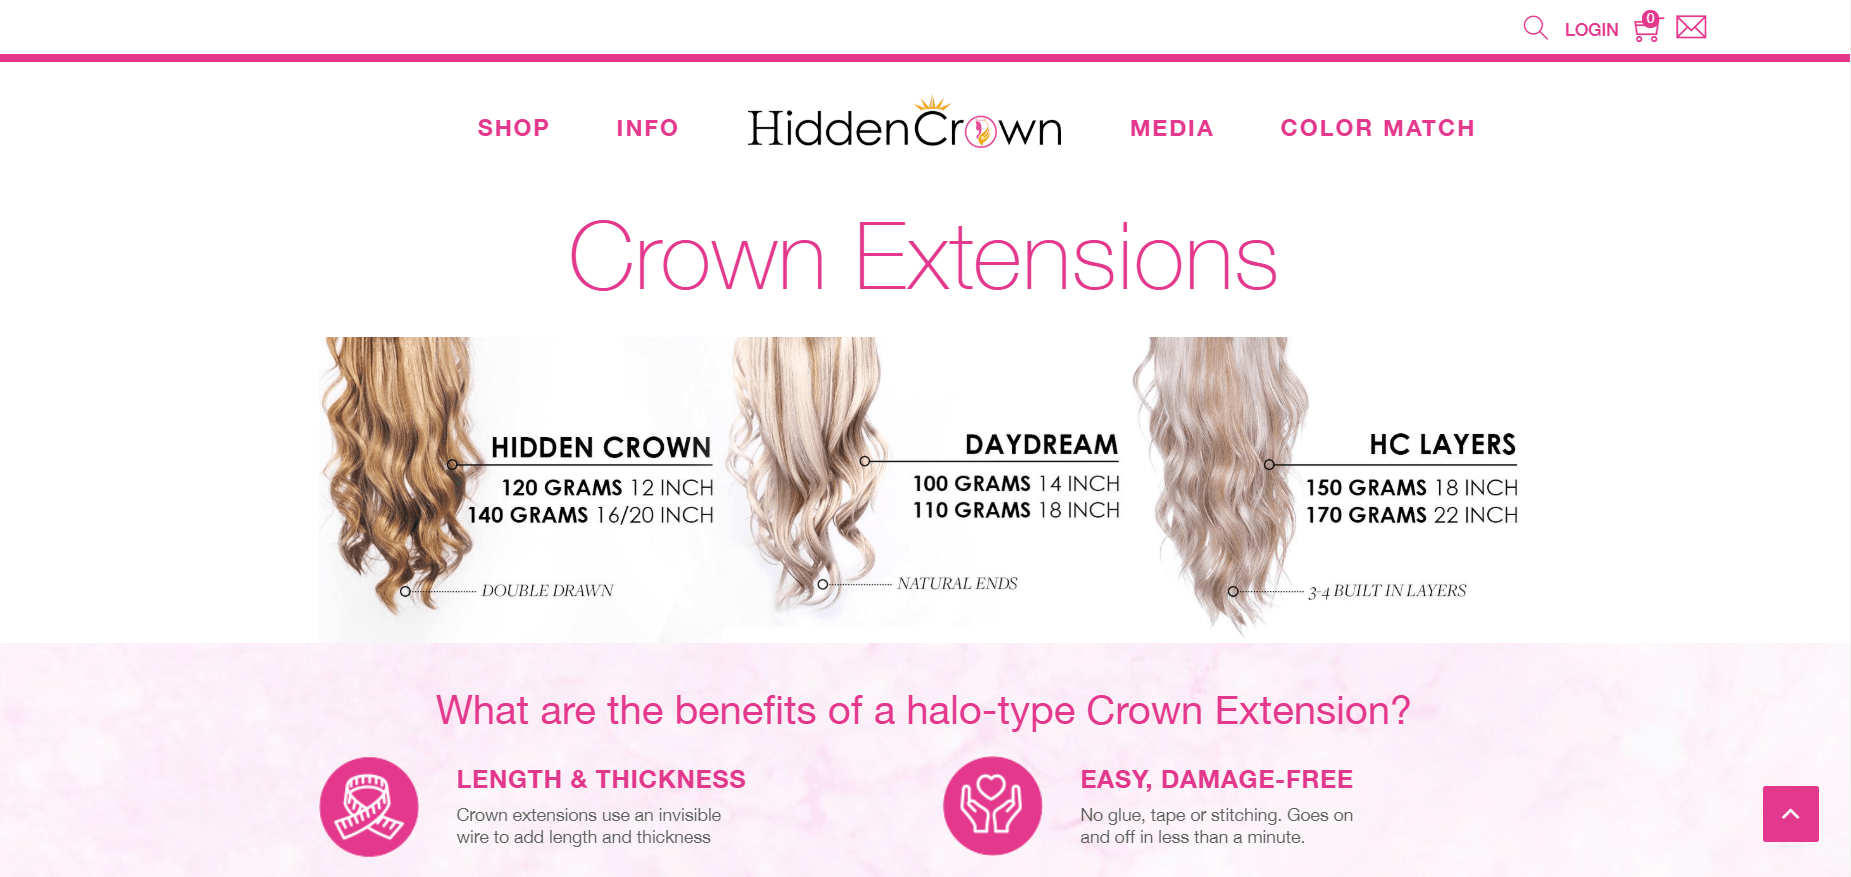 This screenshot shows three different options for halo-shaped crown extensions from Hidden Crown, a hair extension company that has one of the ten best hair extension affiliate programs.